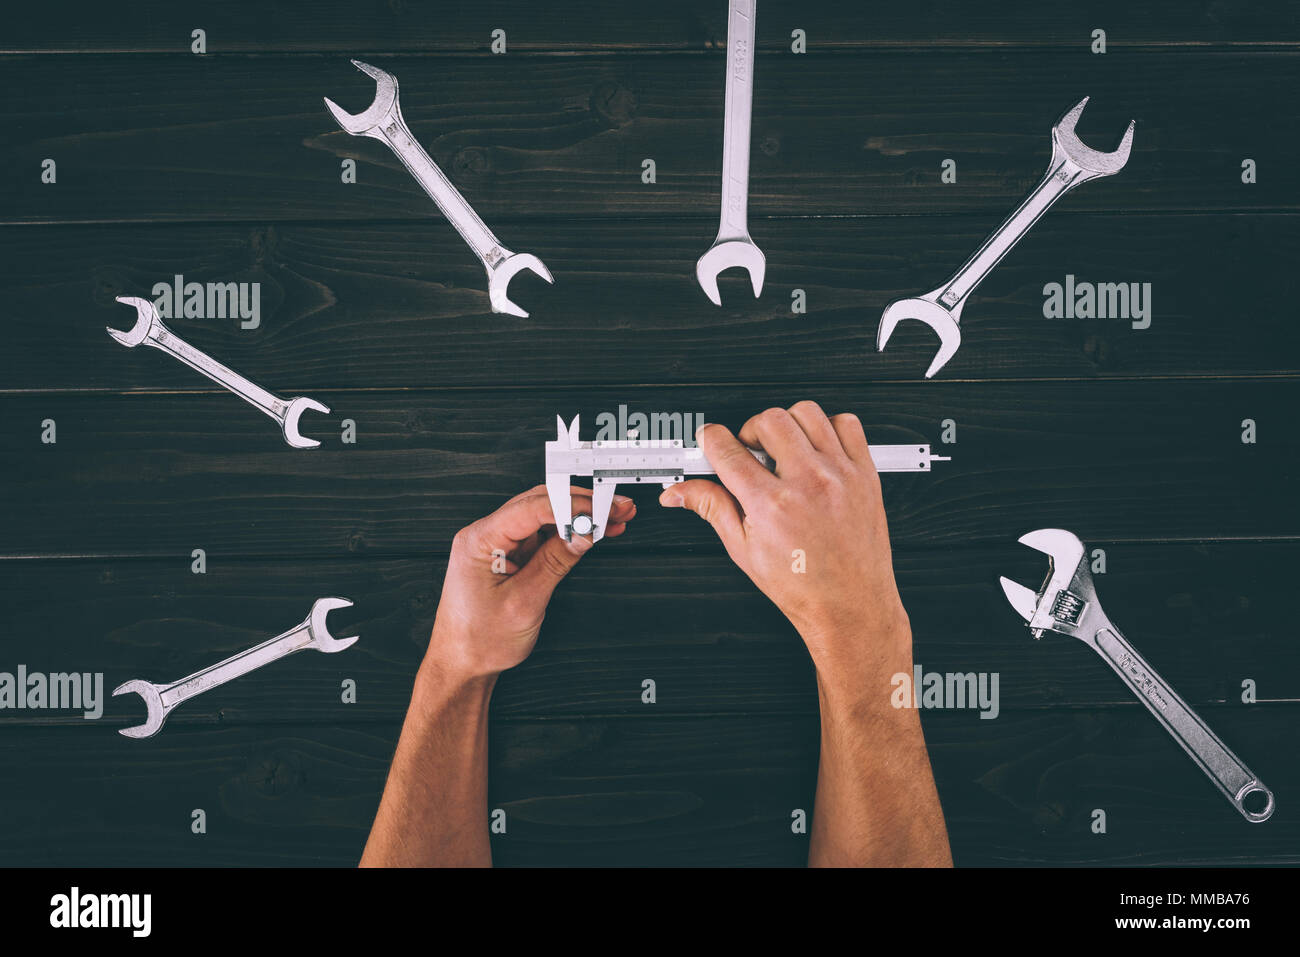 cropped shot of worker getting measurements with vernier caliper and wrenches on wooden tabletop - Stock Image